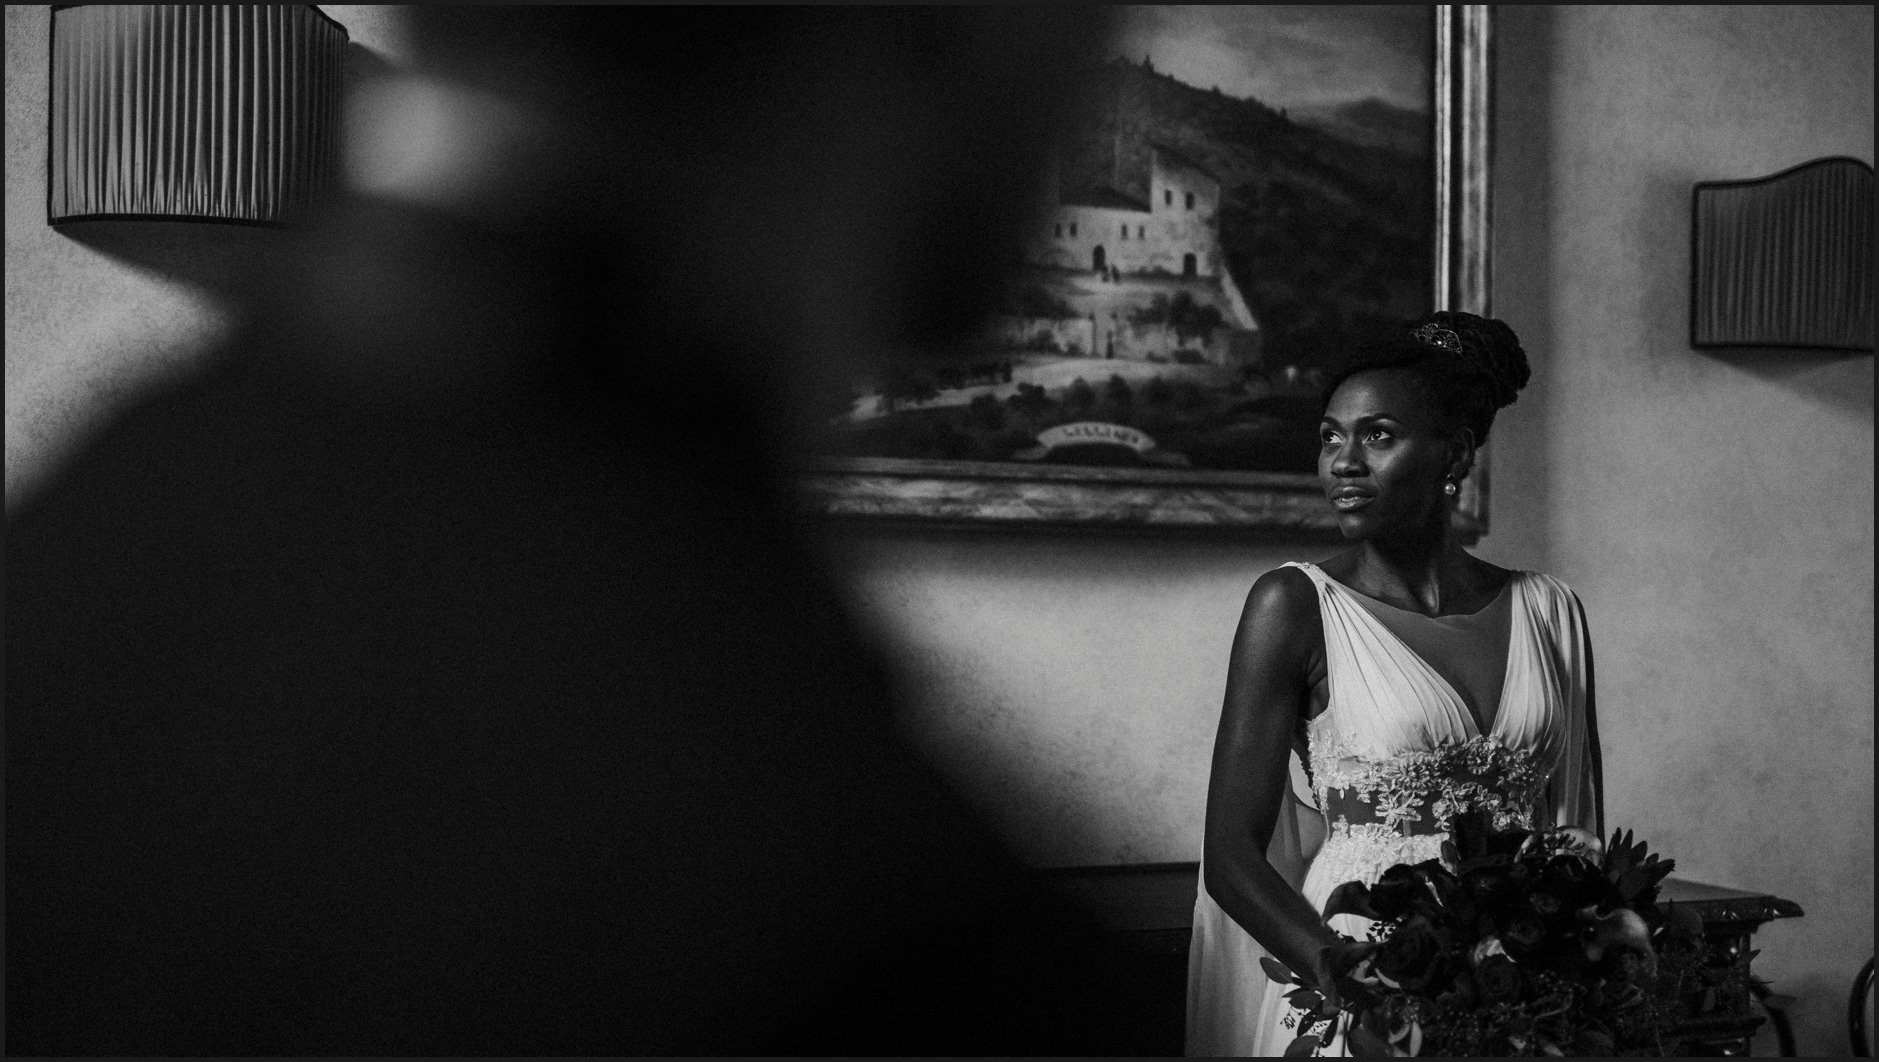 wedding, bride, villa medicea di lilliano, portrait, indoor, natural light, black and white